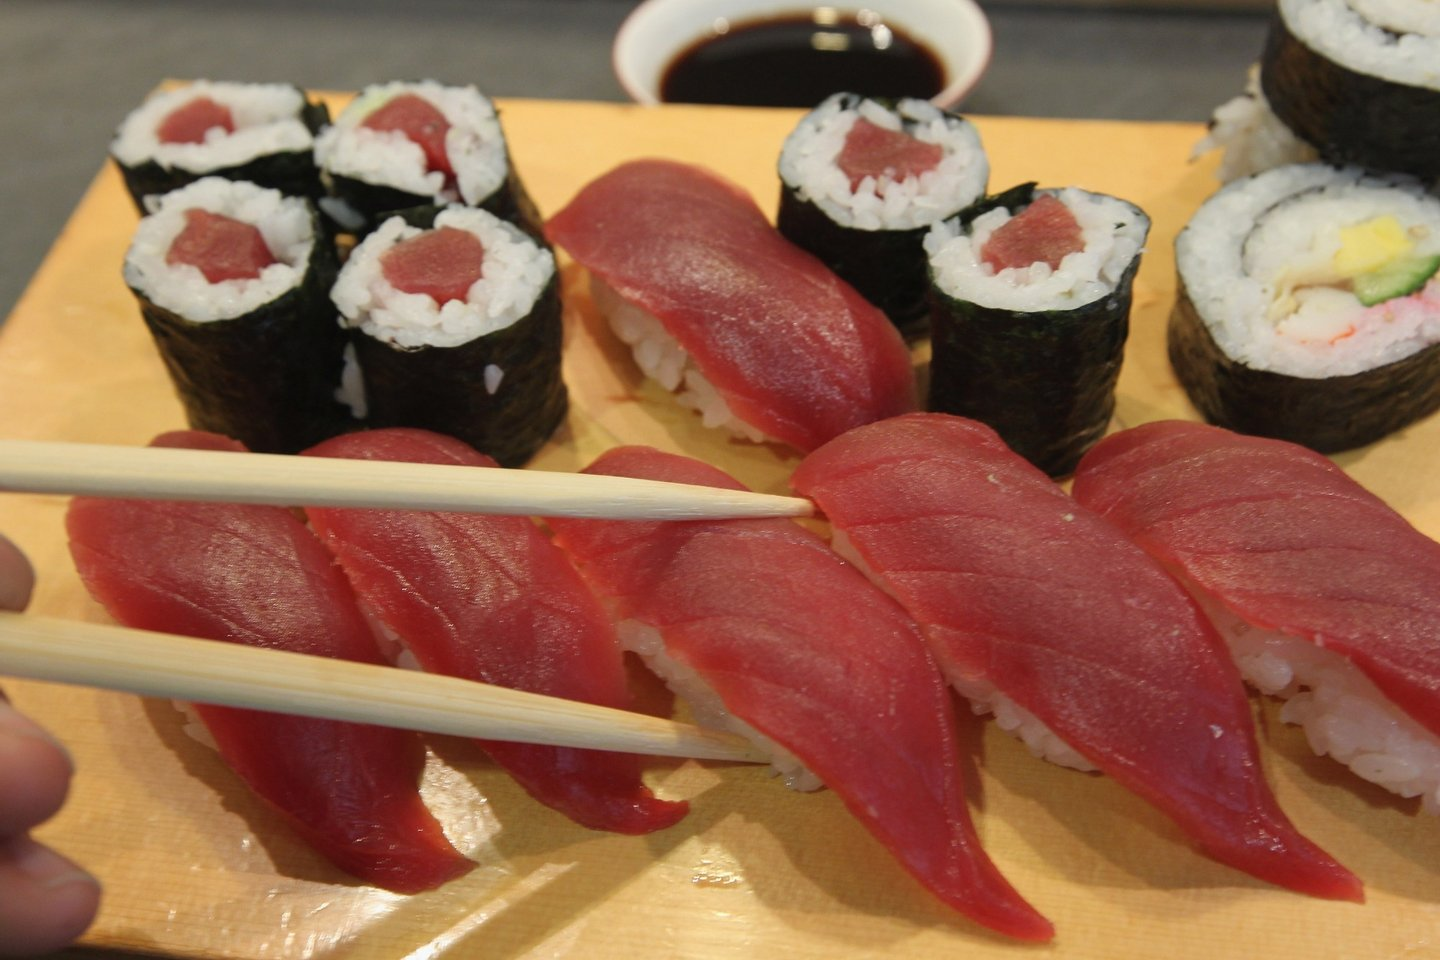 BERLIN - NOVEMBER 23:  Sushi from yellowfin, or maguro, tuna lies on a customer's plate at a sushi restaurant on November 23, 2010 in Berlin, Germany. Yellowfin tuna is mostly fished in the Atlantic and is among the cheaper and more plentiful varieties of tuna.  (Photo by Sean Gallup/Getty Images)